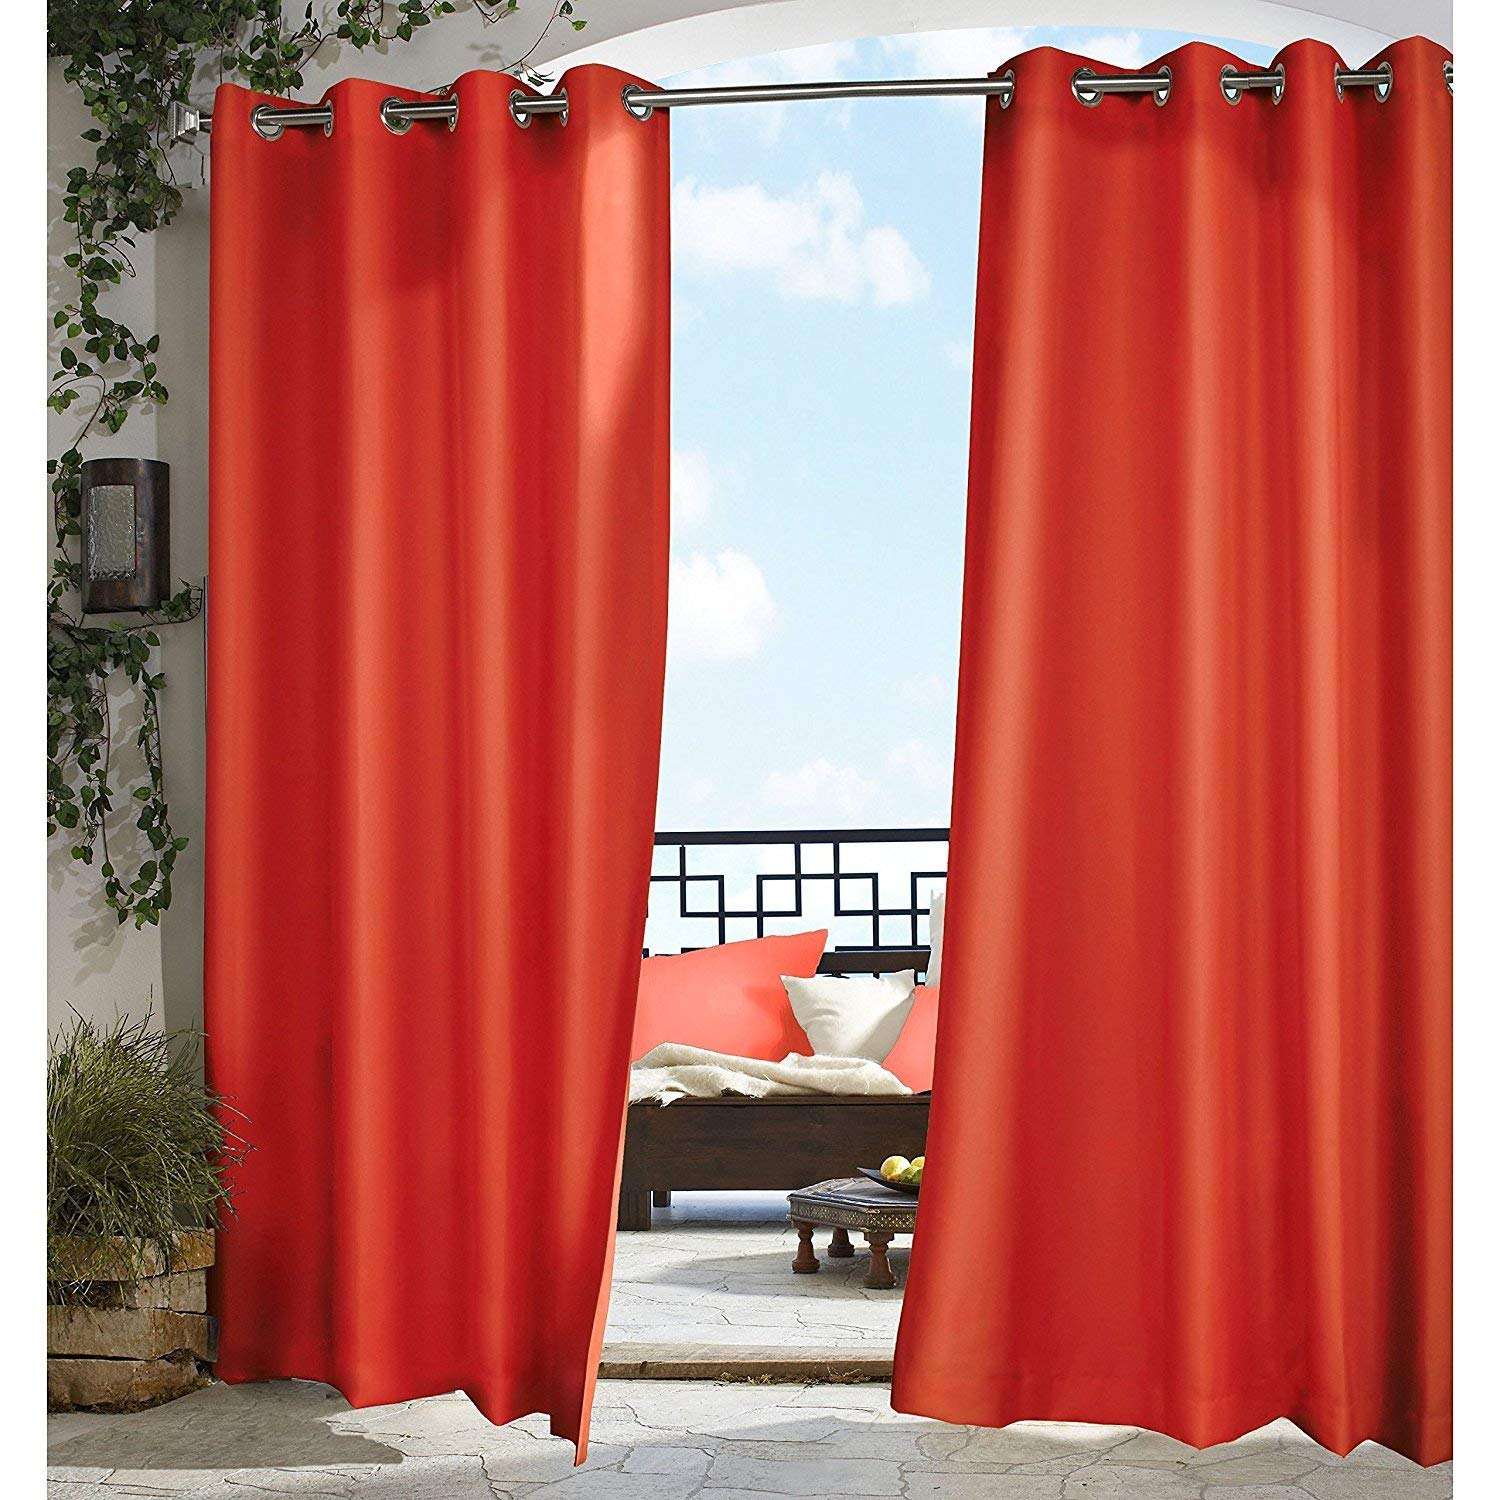 Orange Curtain Panels Cheap Orange Curtain Panel Find Orange Curtain Panel Deals On